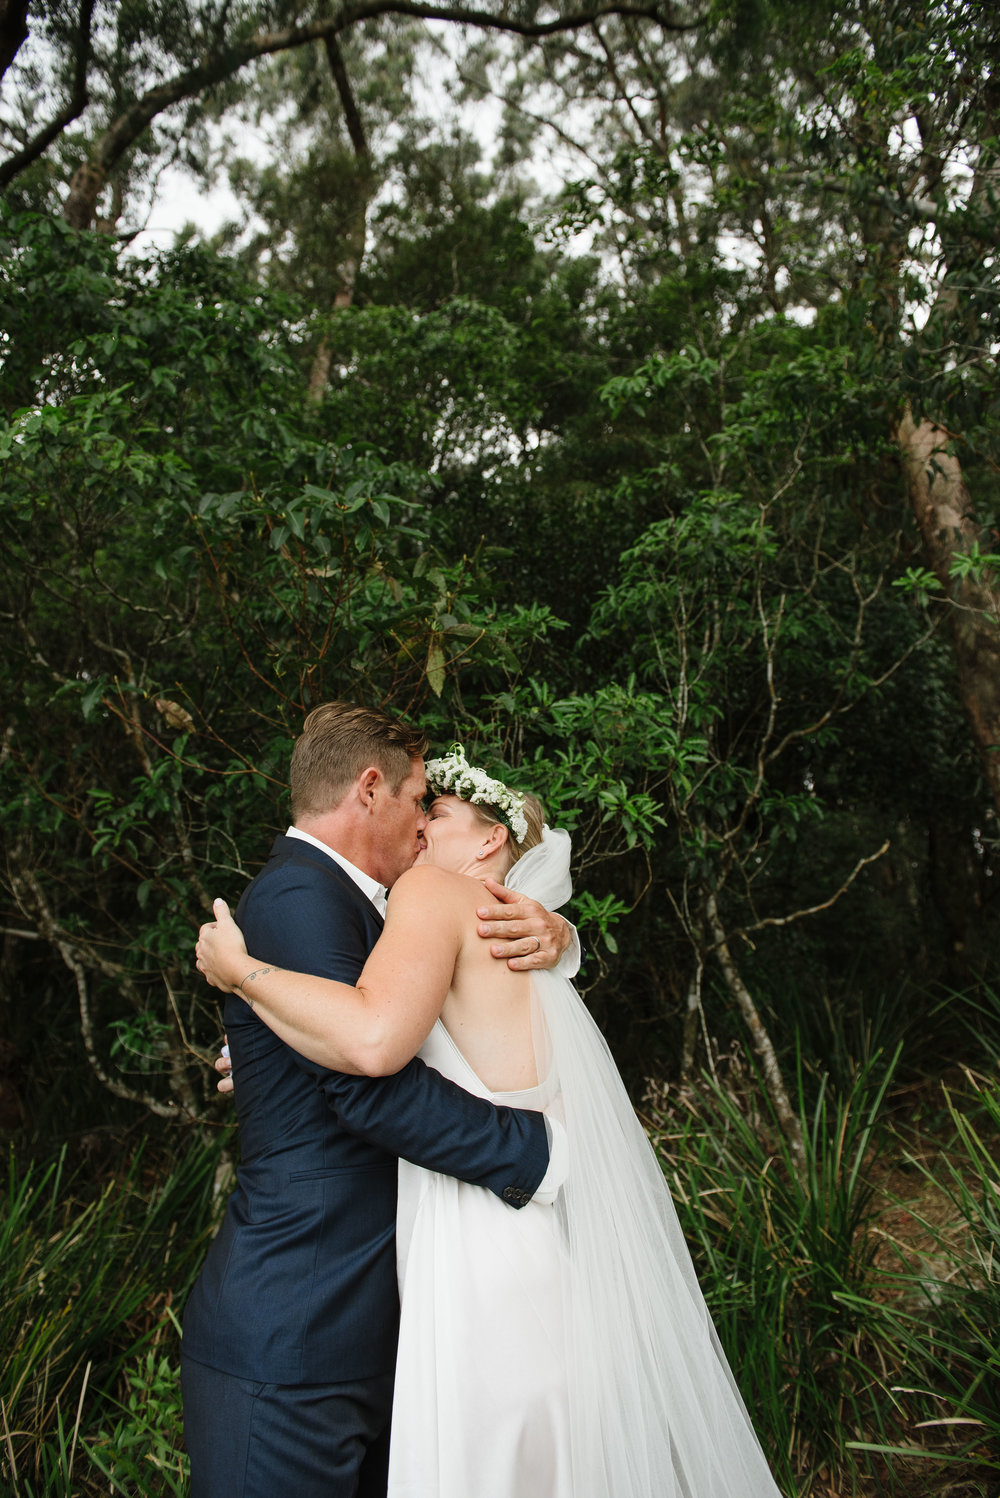 Carla and Luke- wedding photographer, byron bay wedding and family photographer, tweed heads wedding and family photography-199.jpg